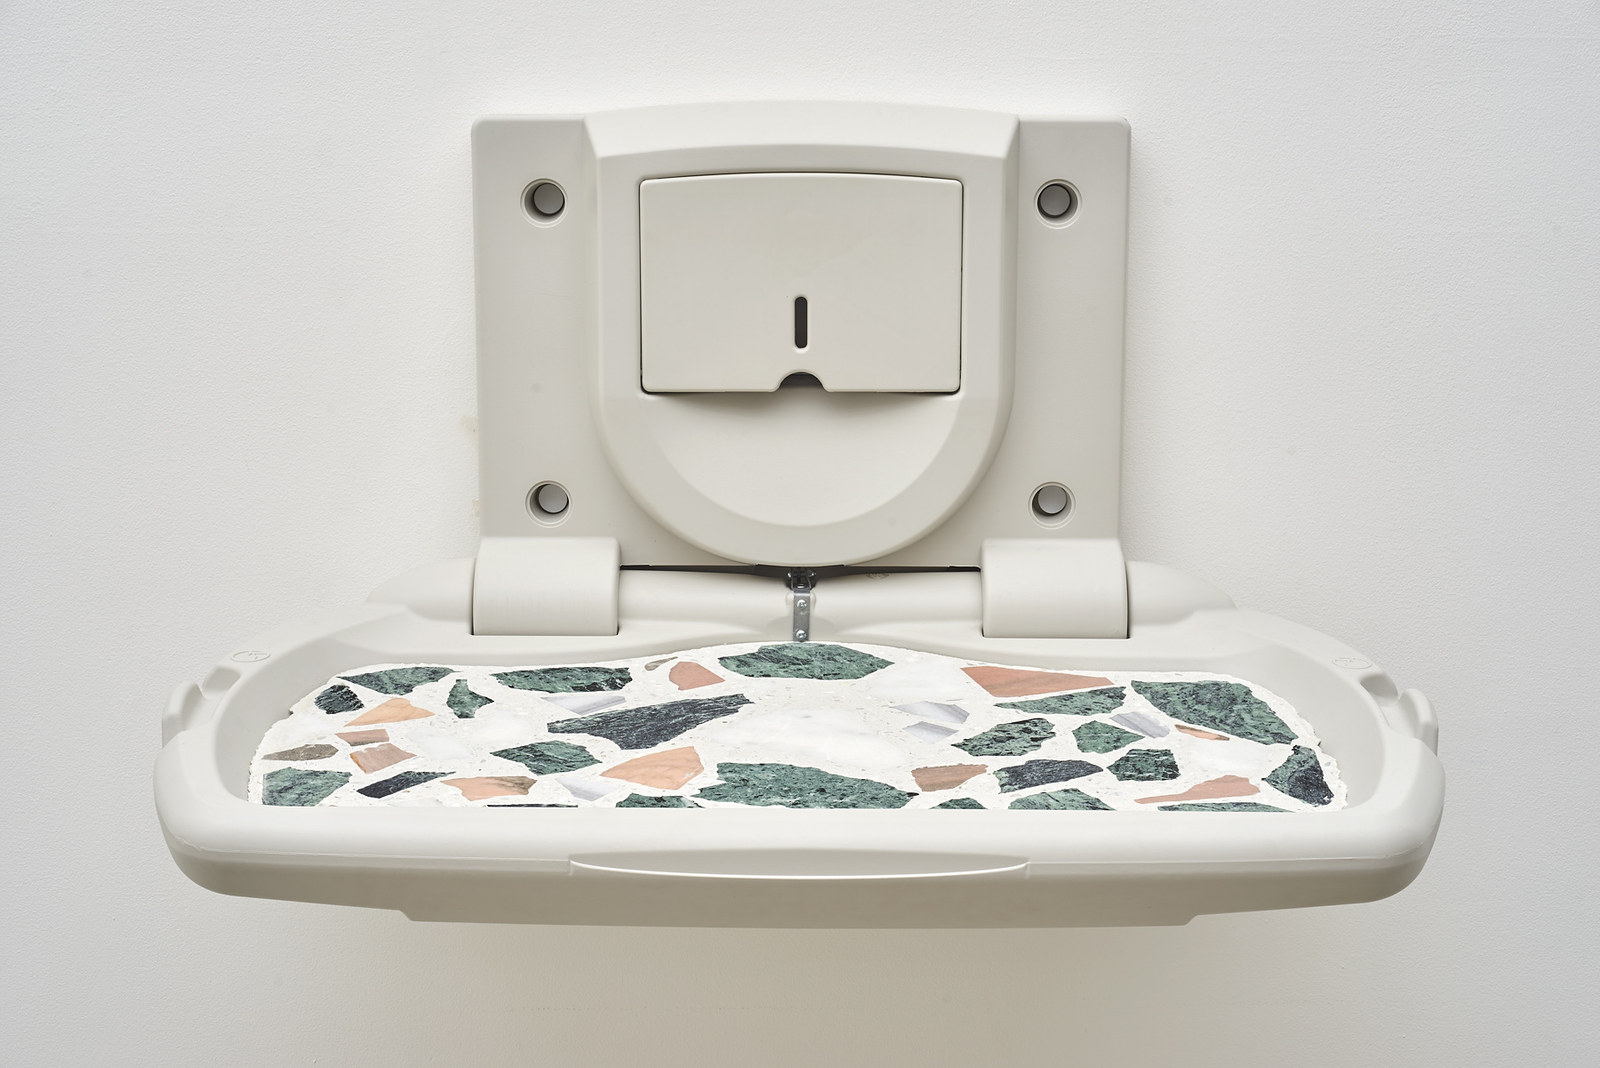 Wermers_Moodboard #4, 2016_Cast terrazzo in baby changing unit_19.25 x 34.75 x 23 in_NW00029ST